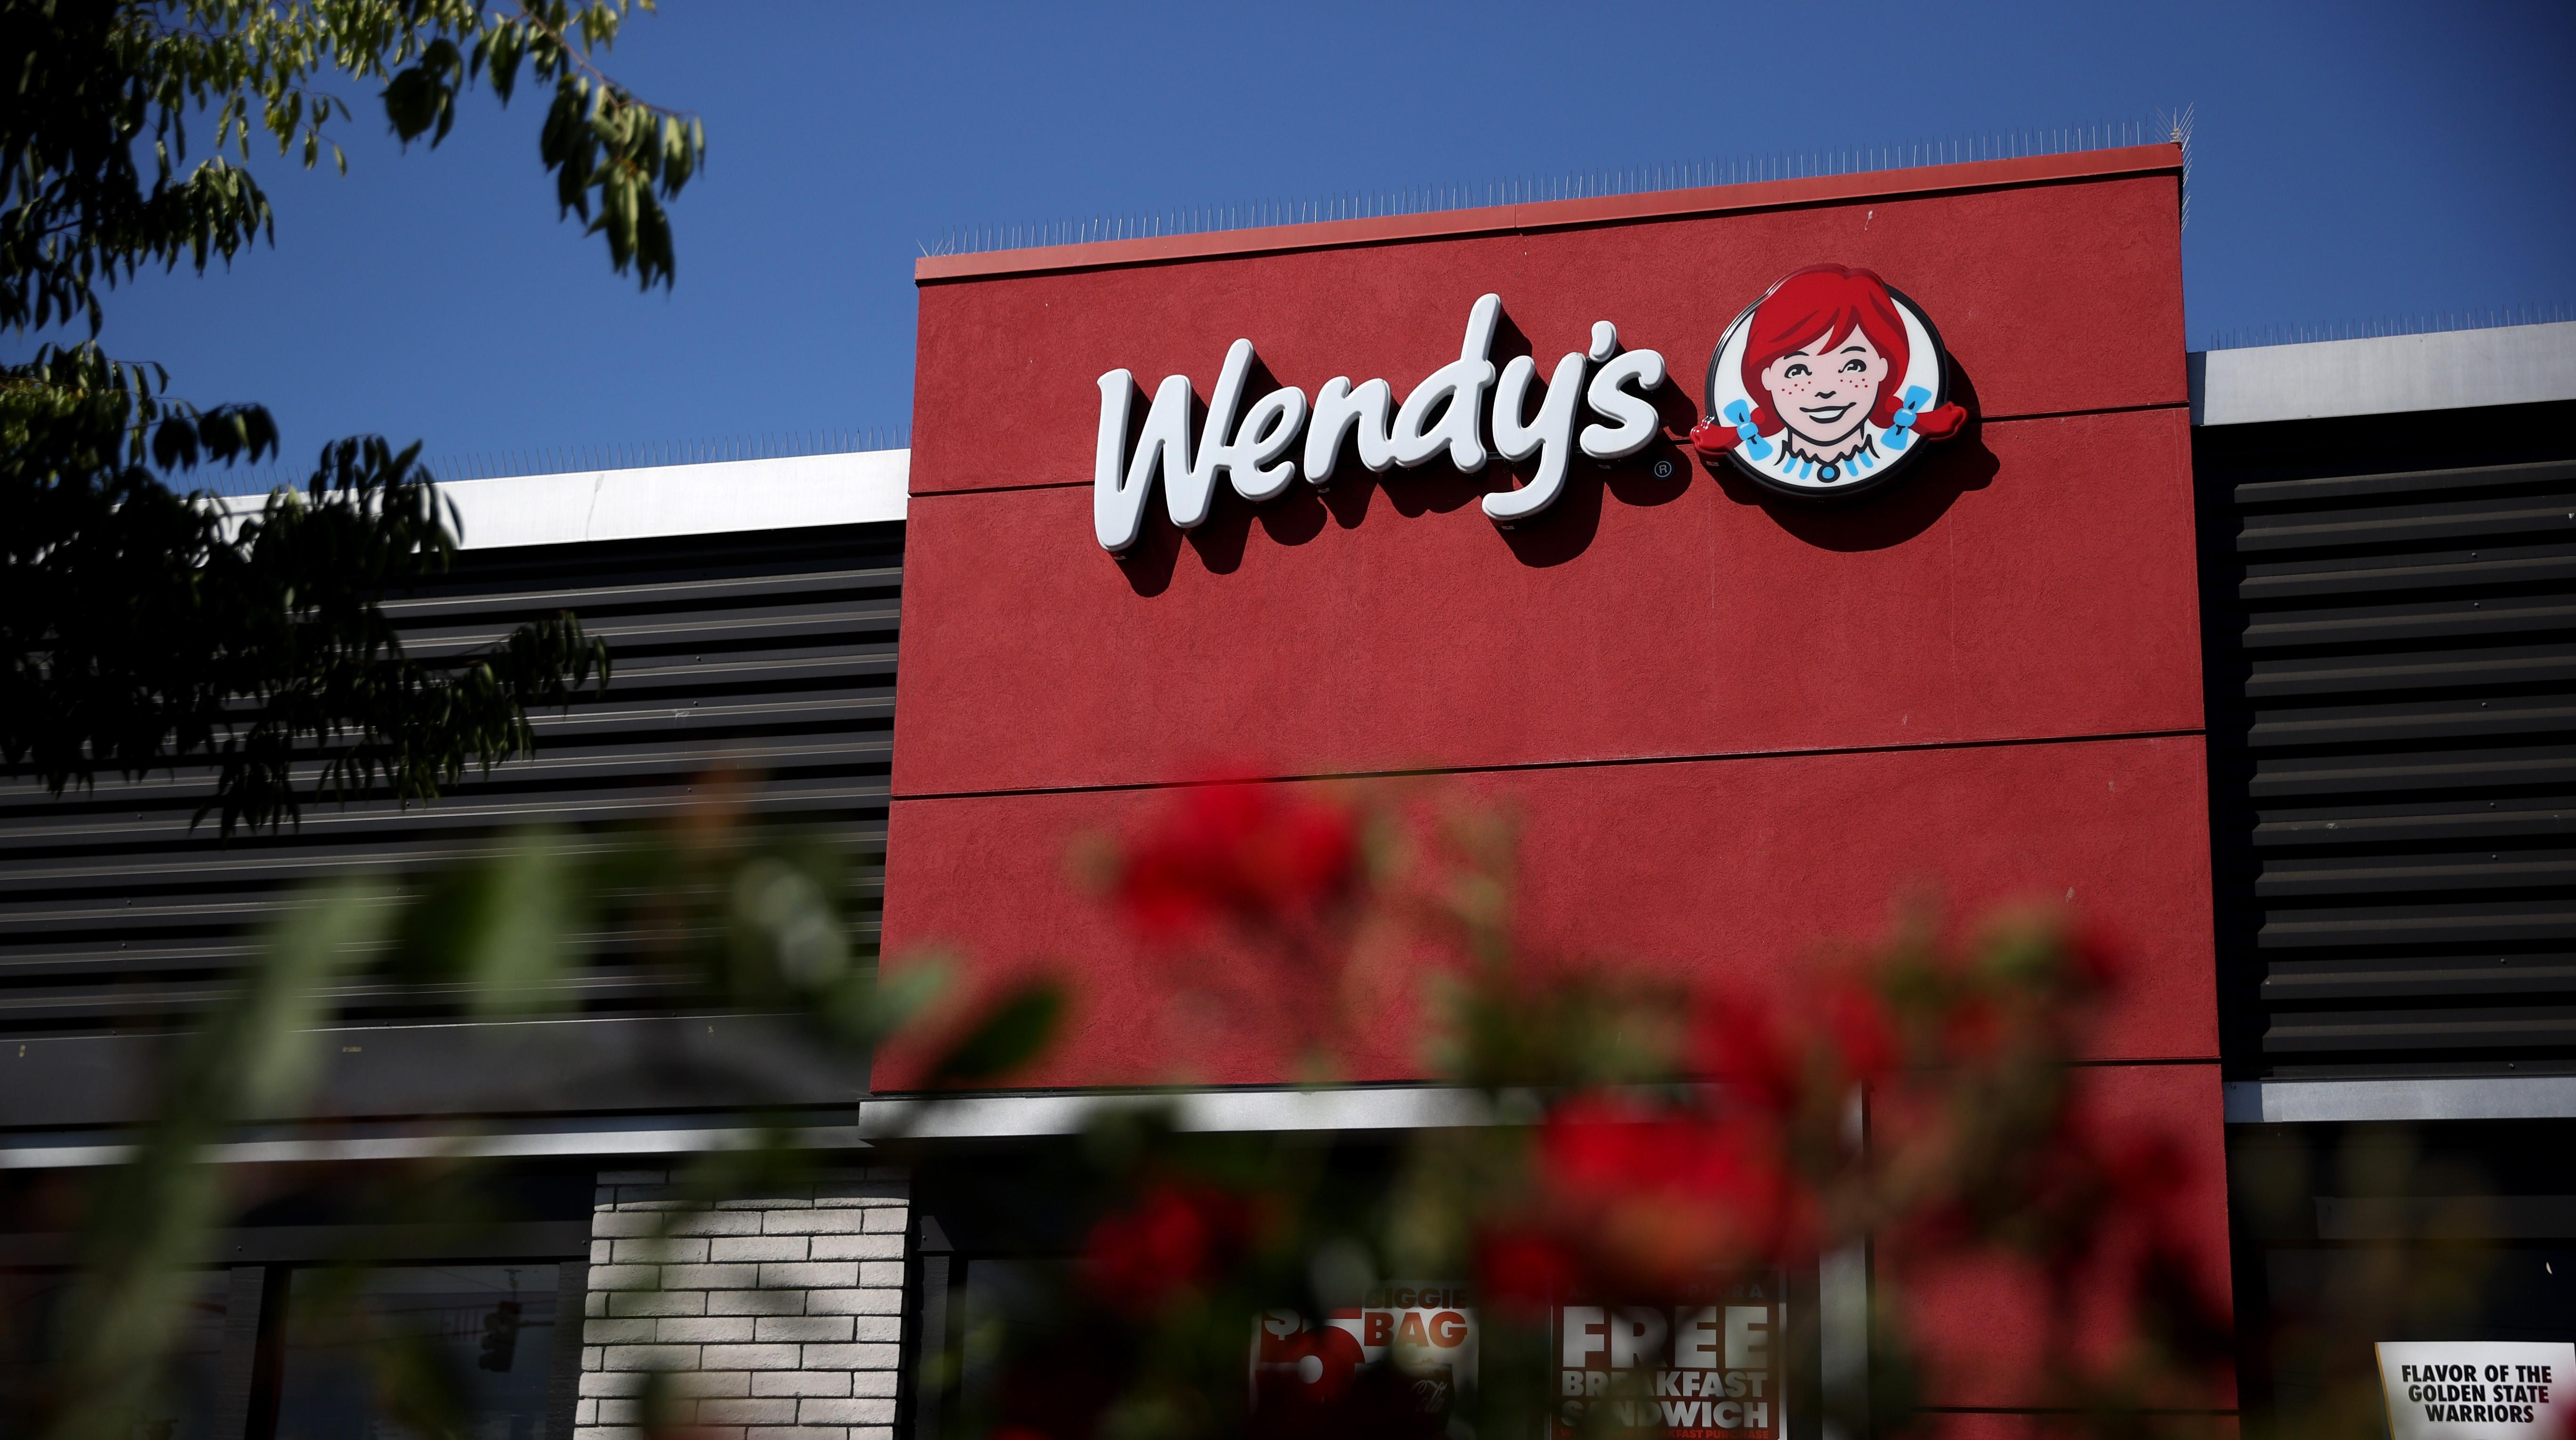 Wendy's storefront behind bushes